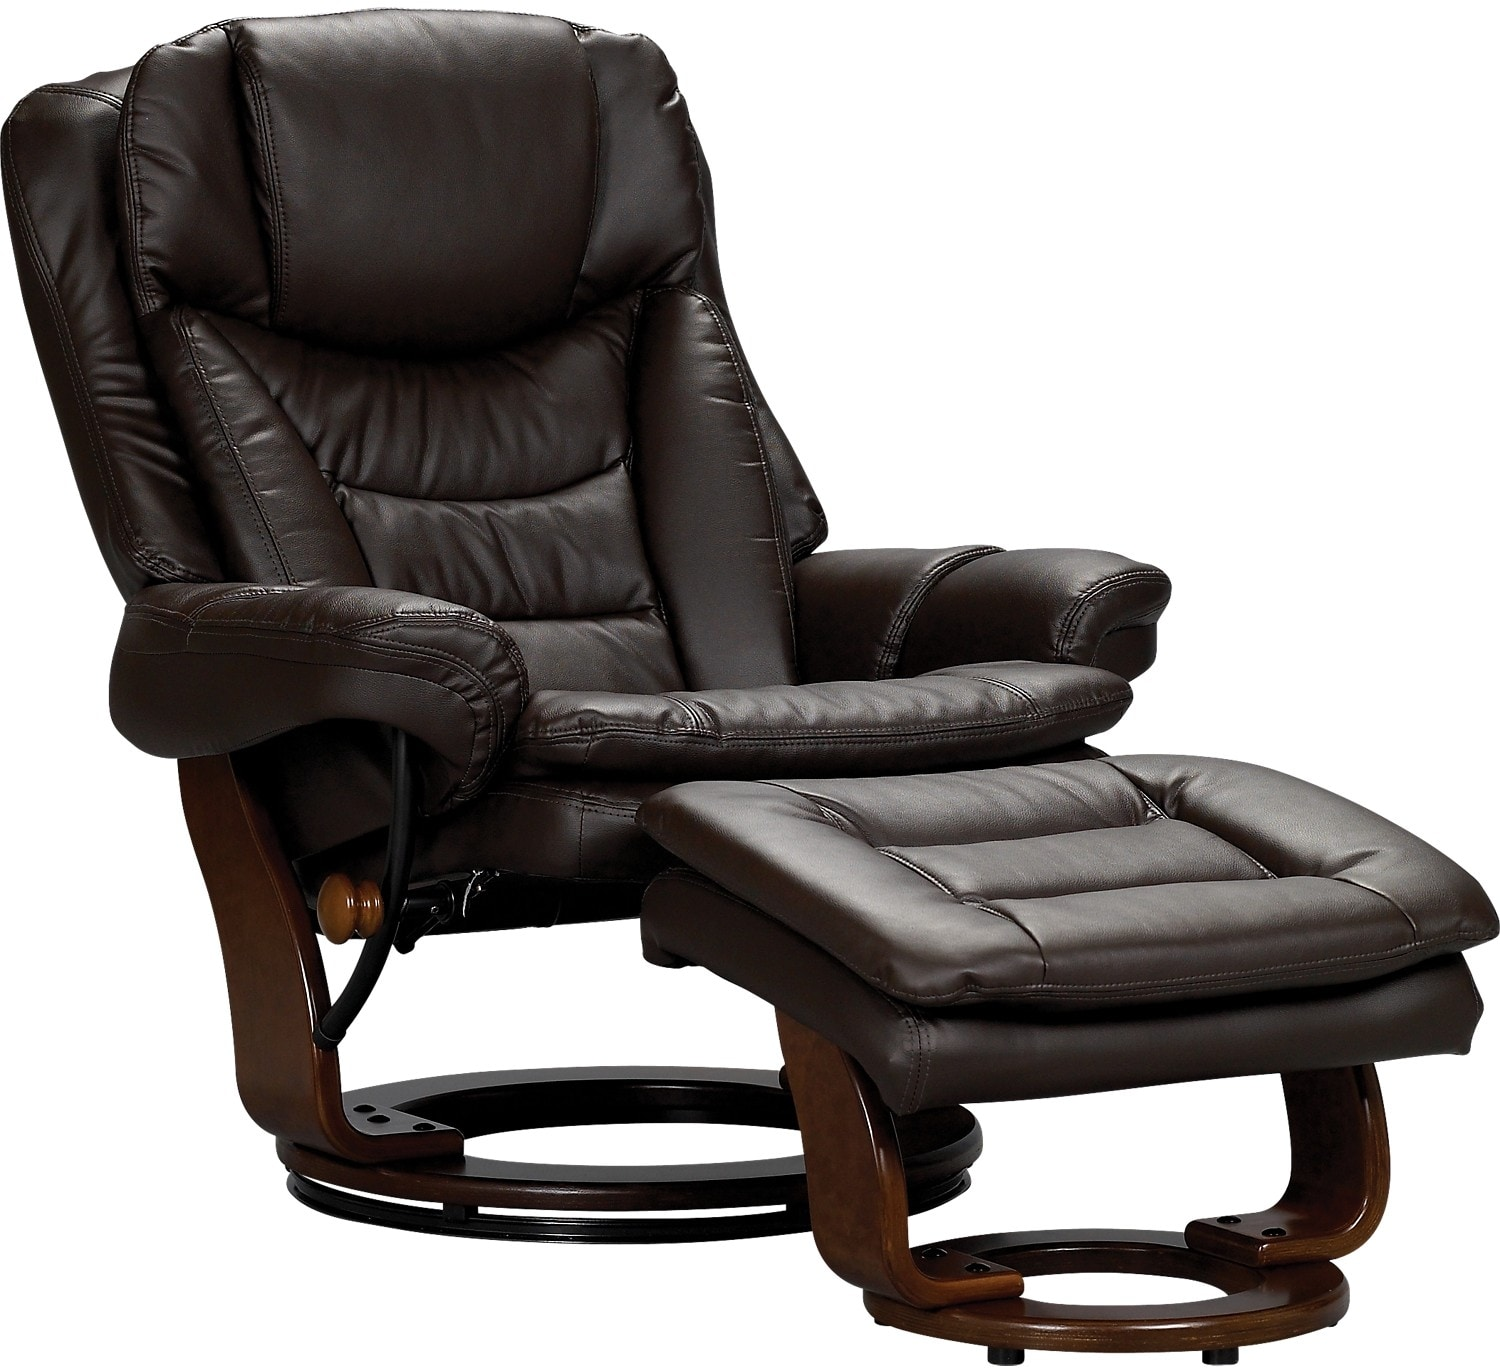 Living Room Furniture - Flynn Bonded Leather Reclining Chair